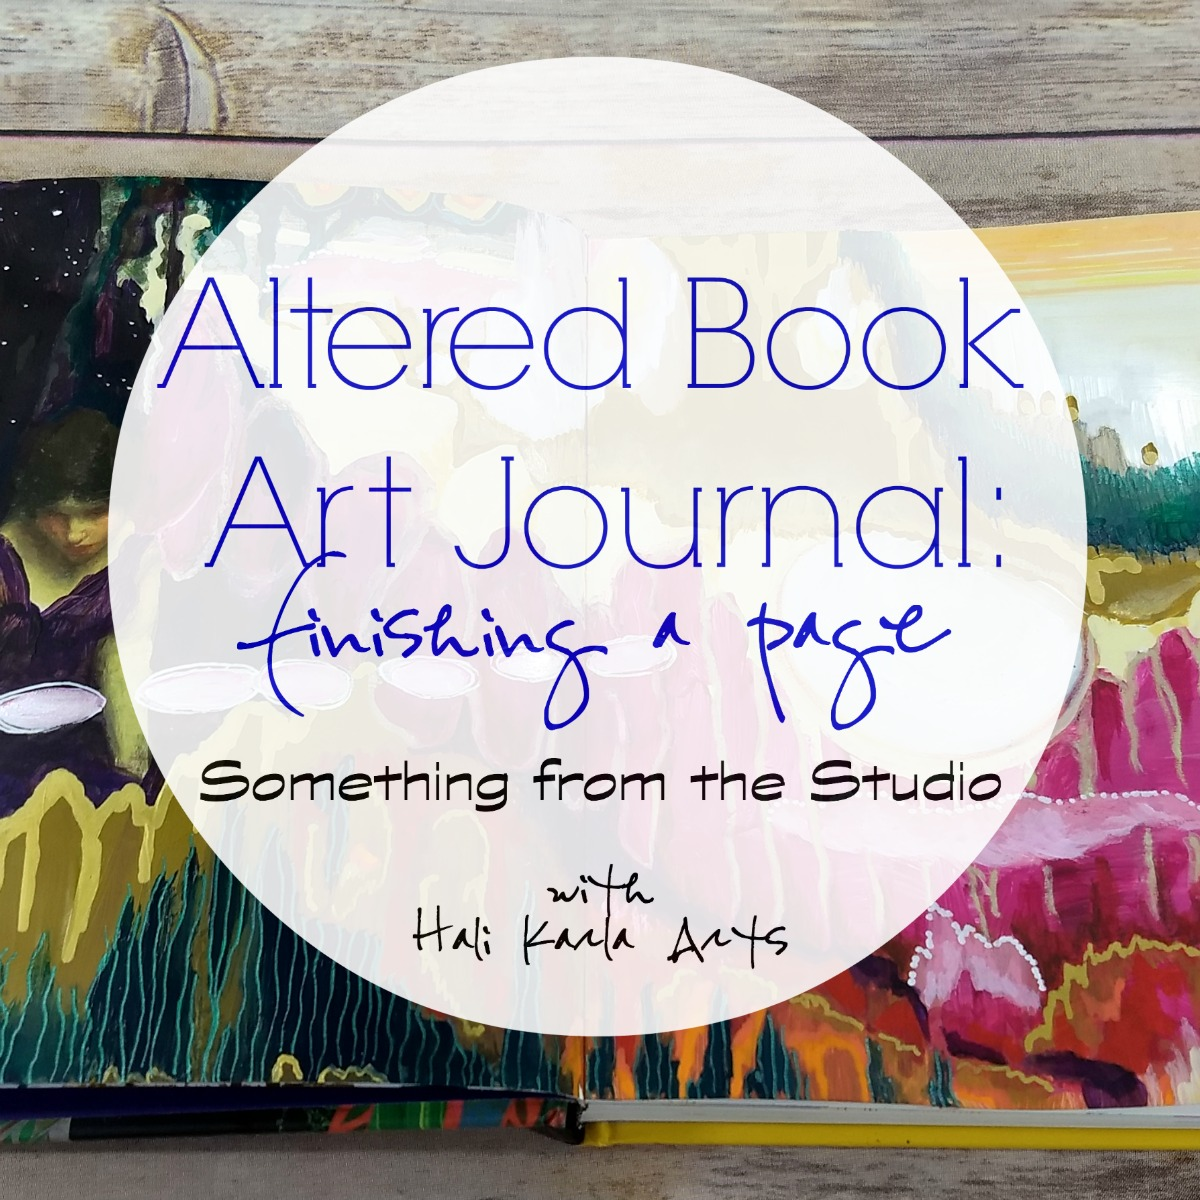 Altered Book Art Journal - a video musing on finishing the first spread in my new journal - come practice art with me! | Hali Karla Arts